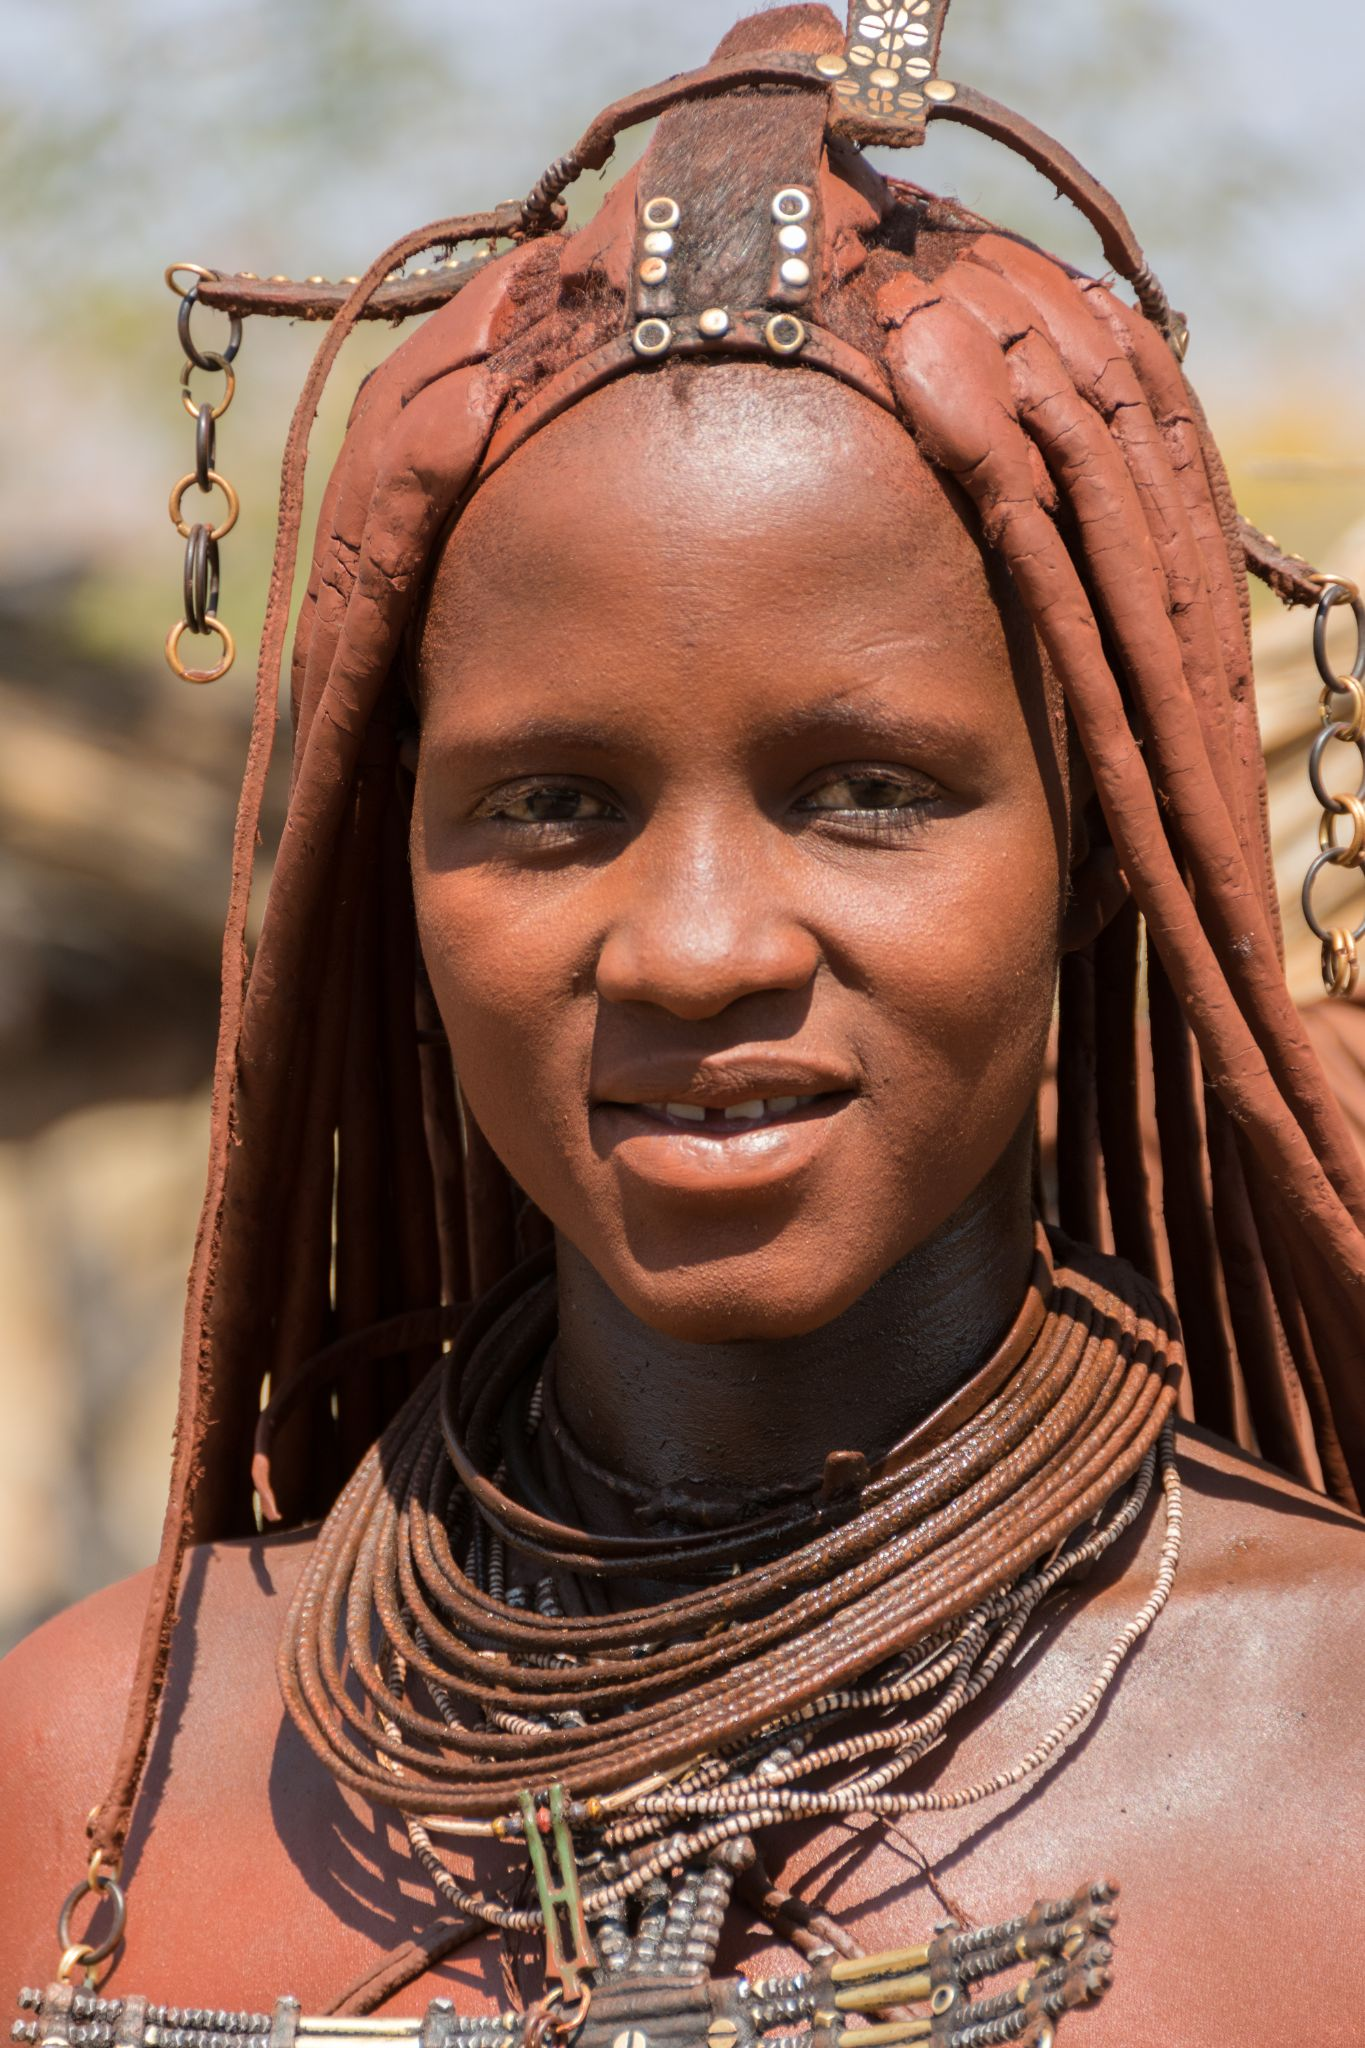 Himba Woman by Paolo Lucciola